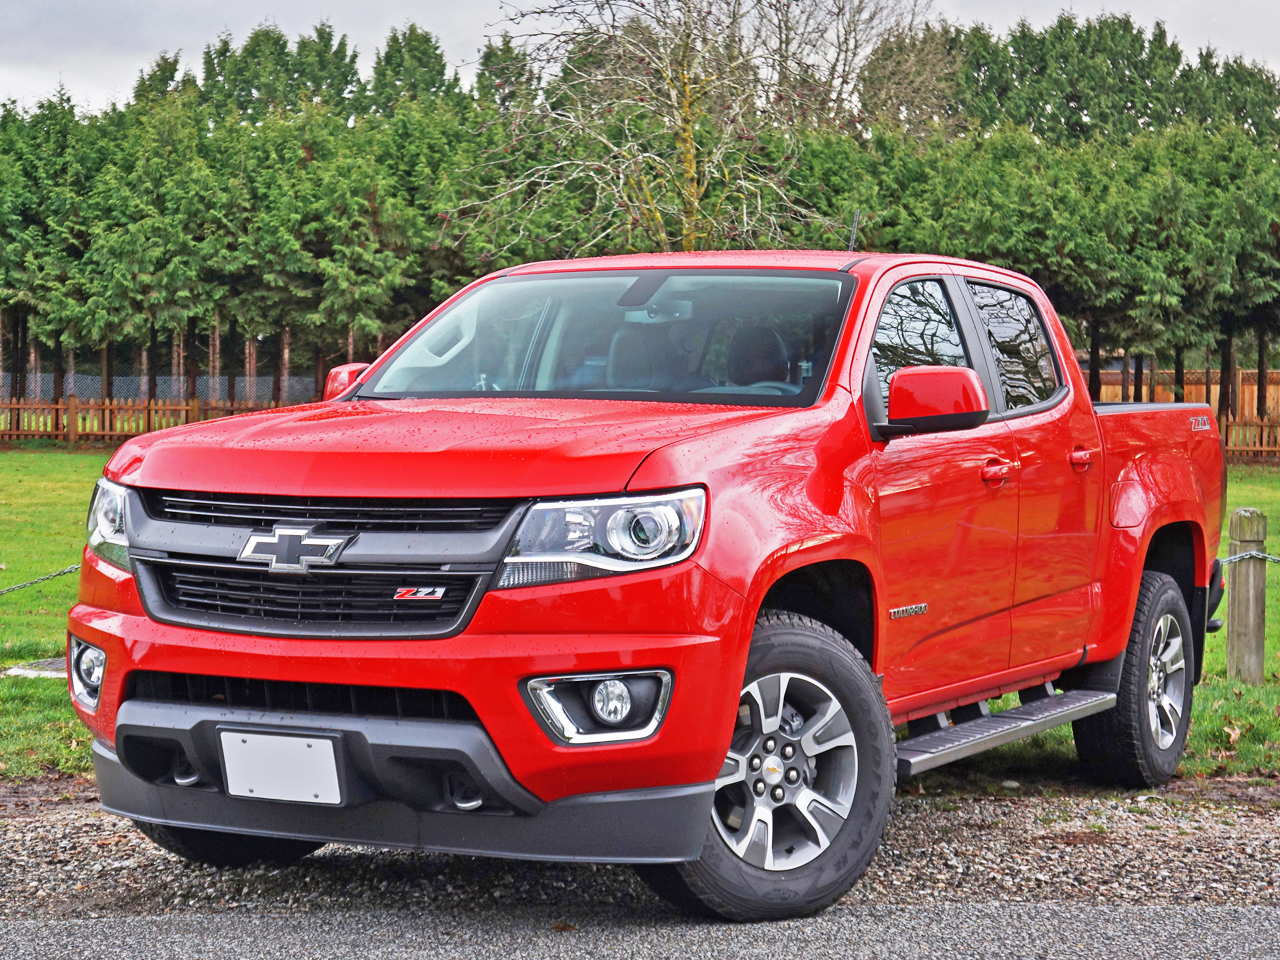 2017 chevy colorado z71 off road review future cars release date. Black Bedroom Furniture Sets. Home Design Ideas